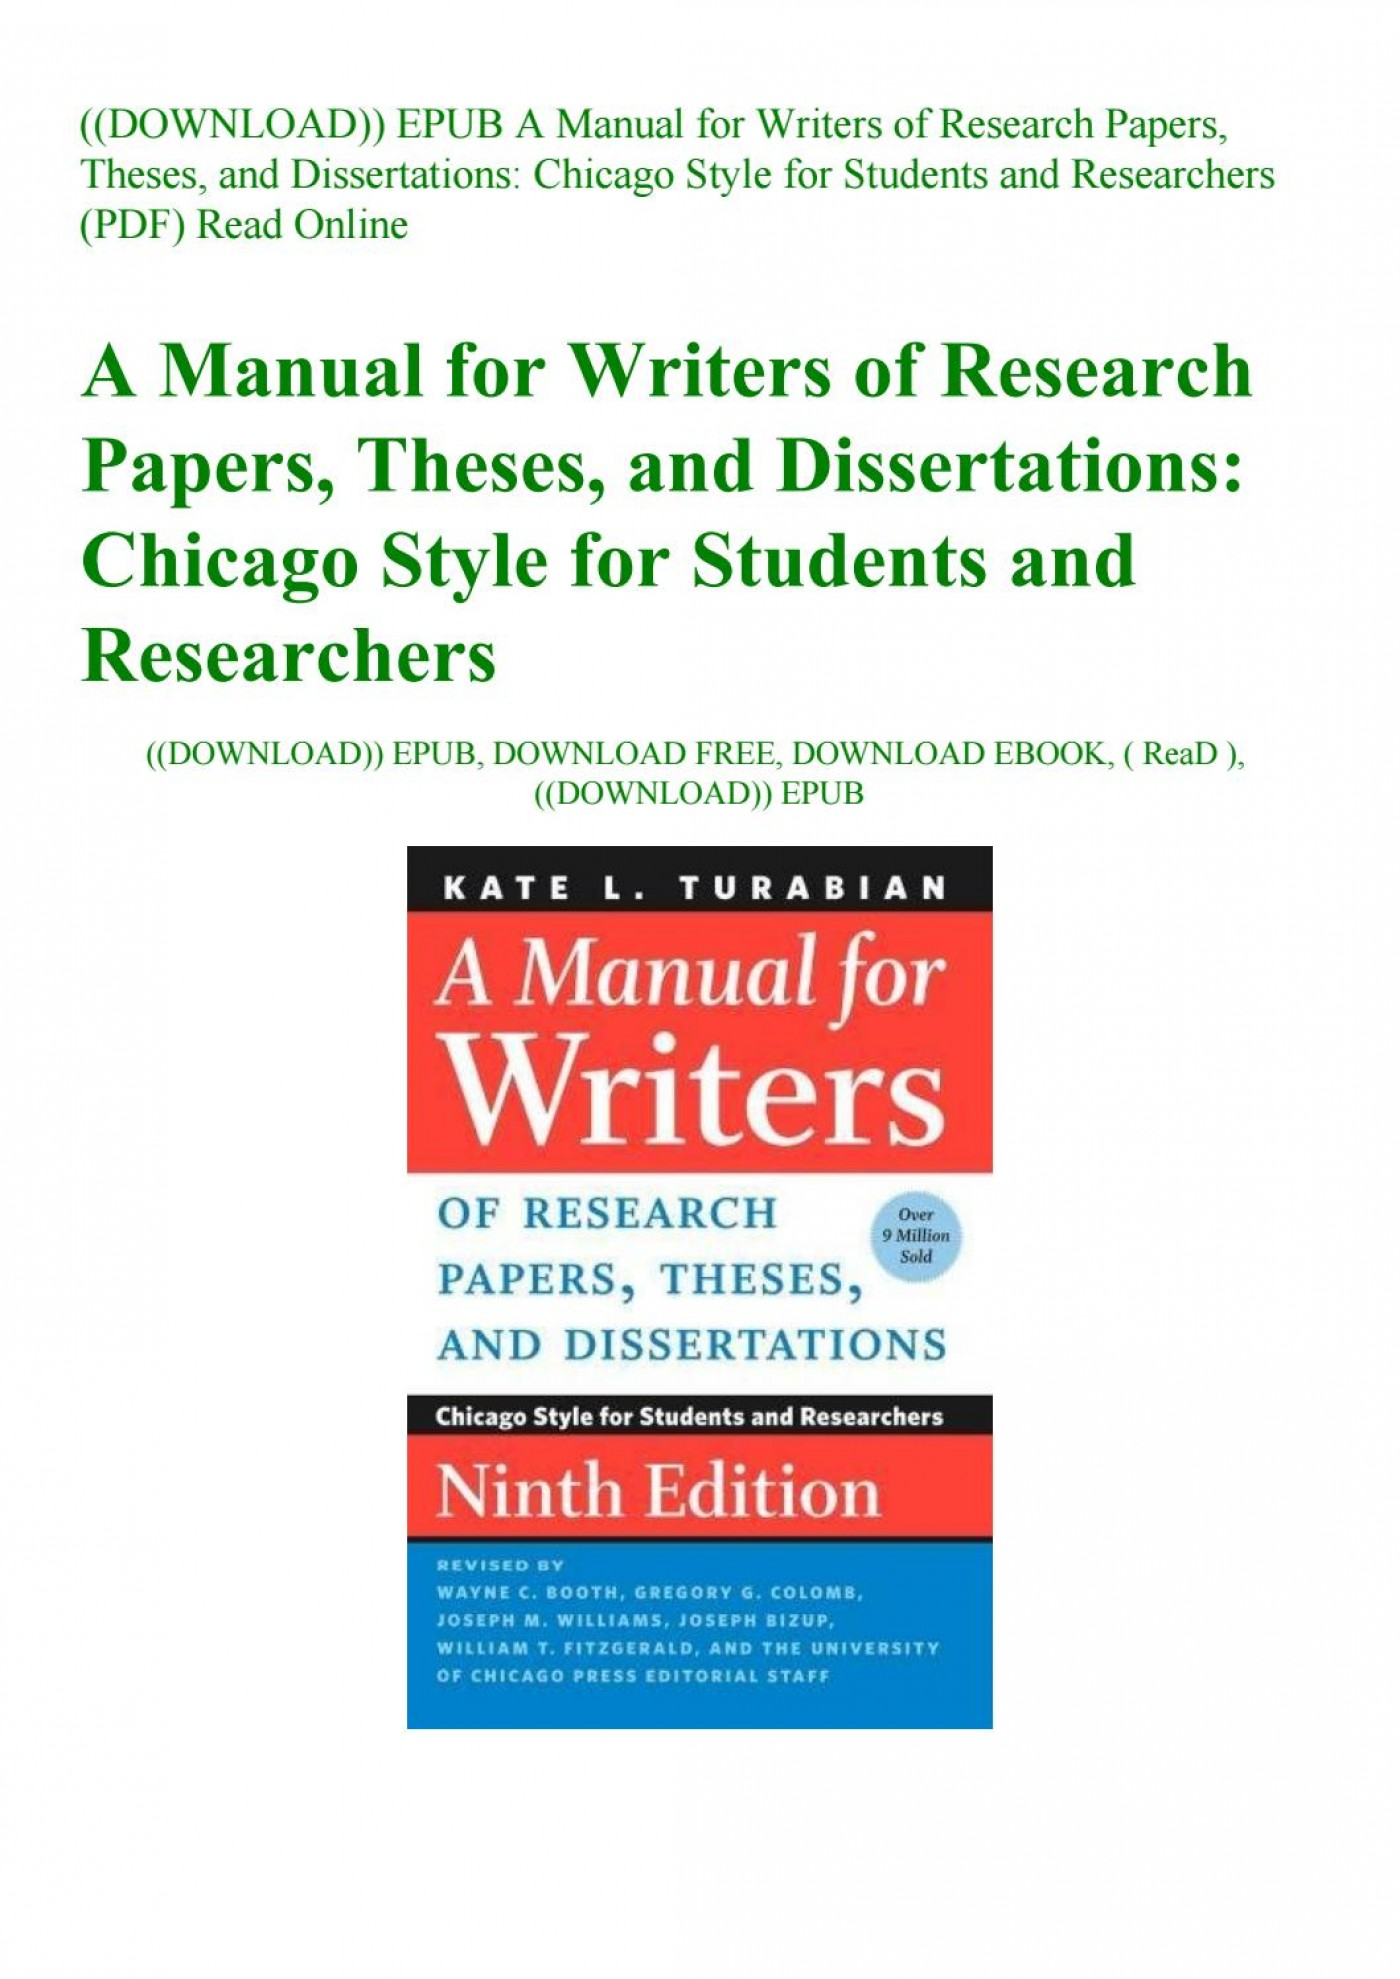 026 Manual For Writers Of Research Papers Theses And Dissertations Turabian Paper Page 1 Amazing A Pdf 1400